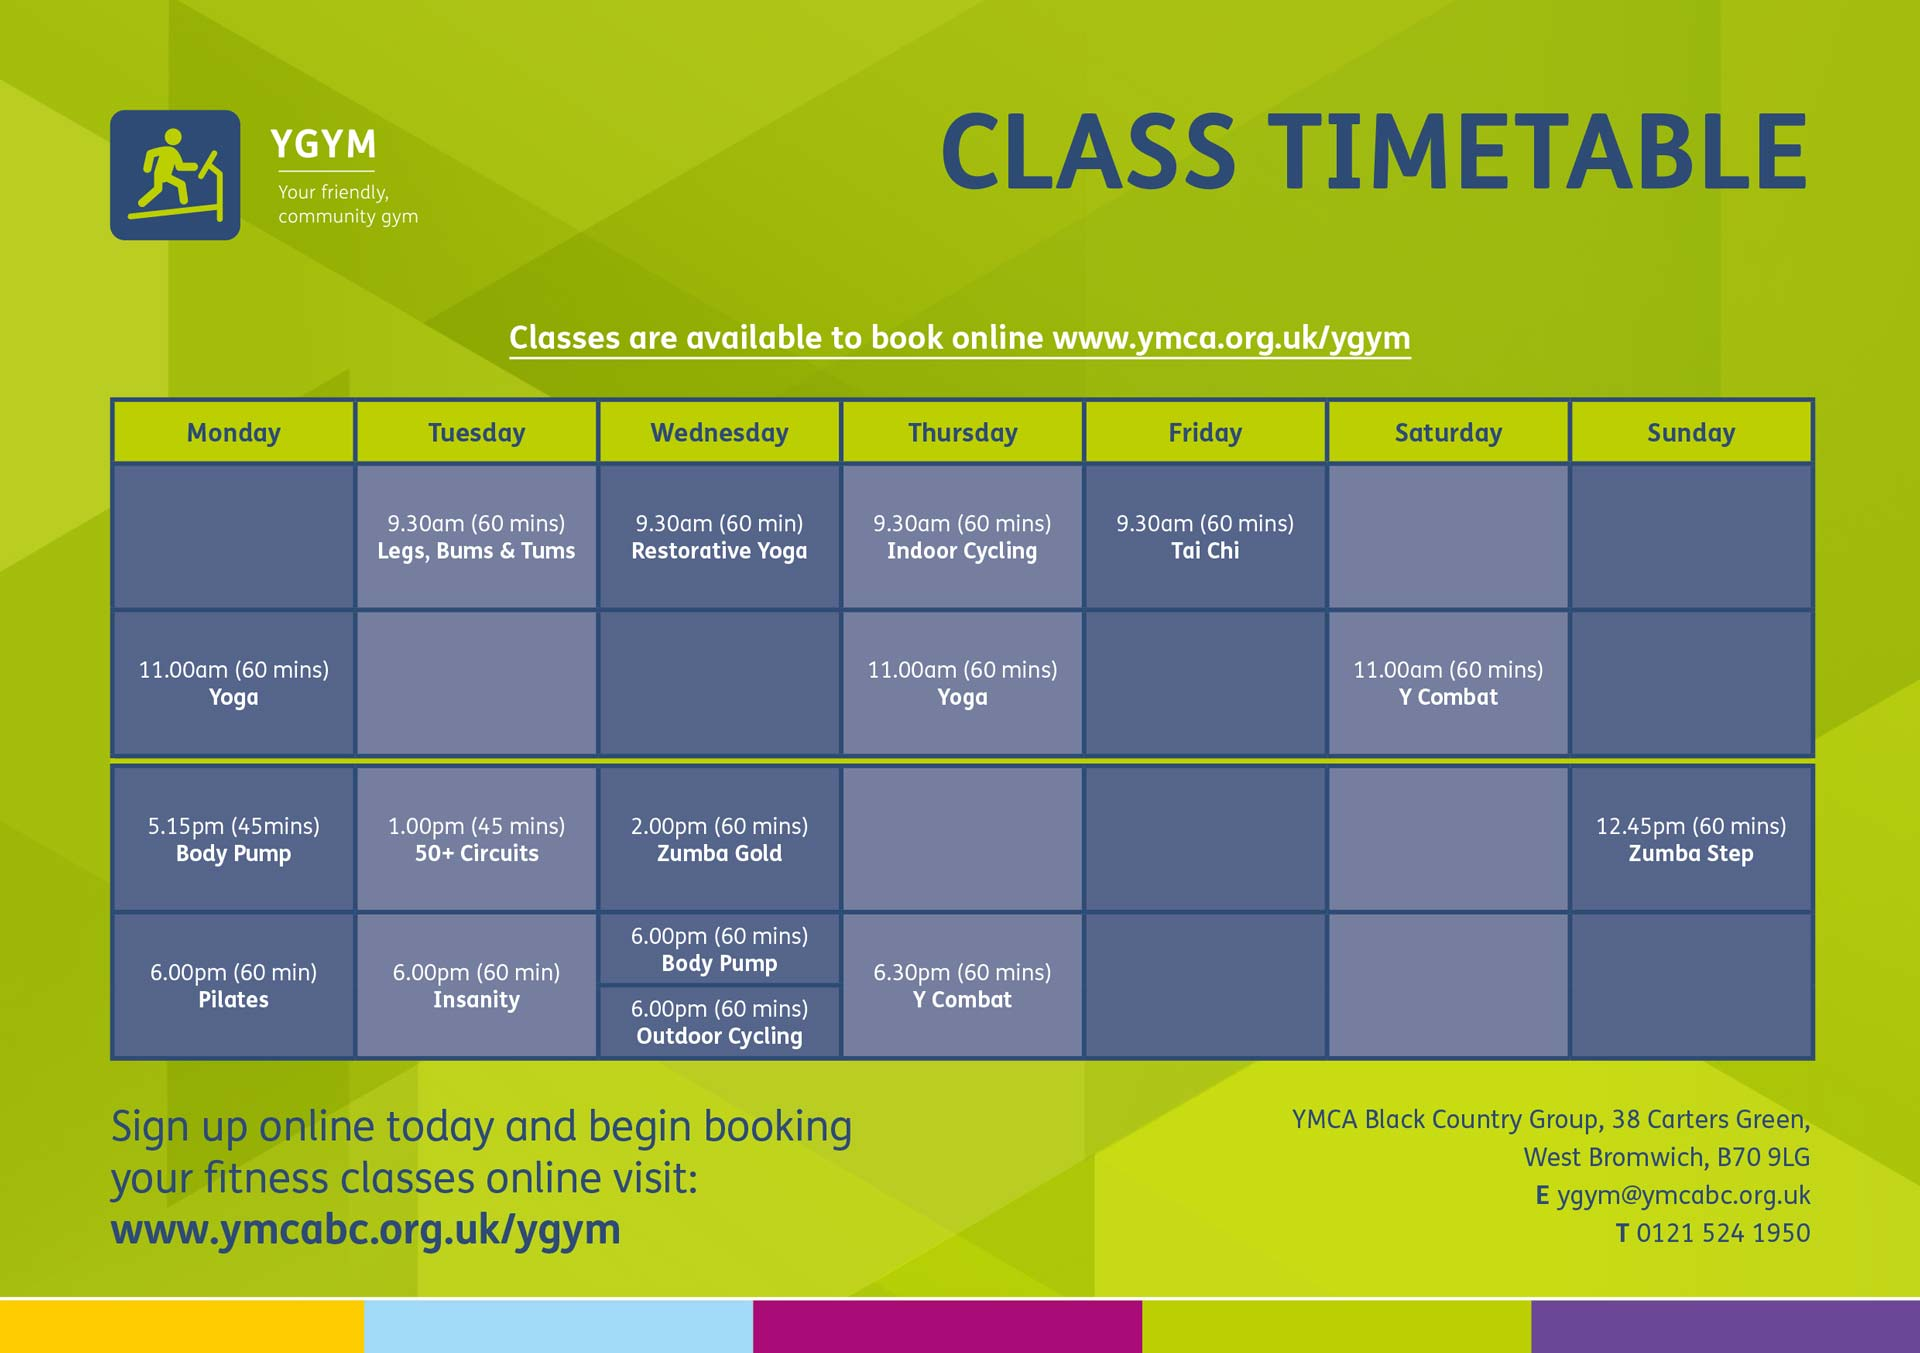 Gym Timetable July 2021